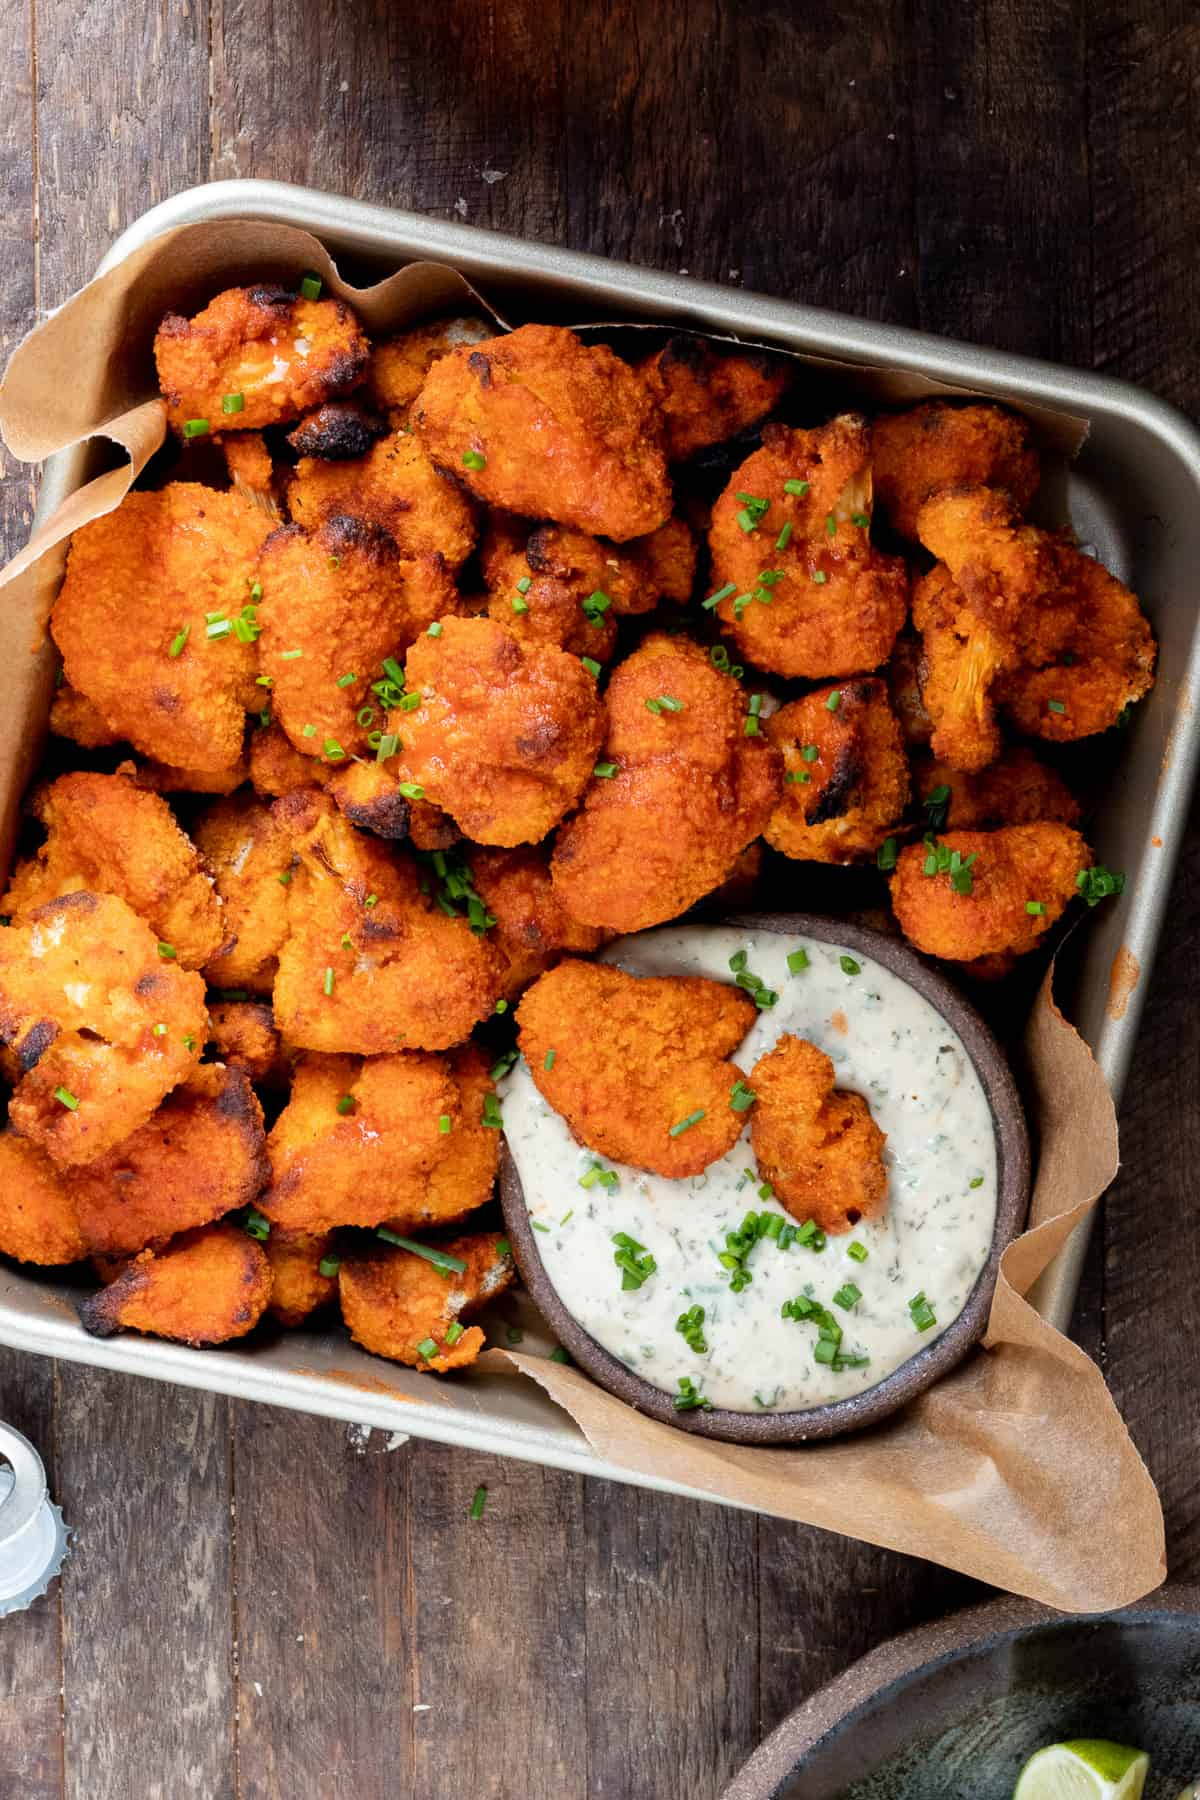 vegan buffalo wings in square dish with parchment paper dipped in ranch dressing